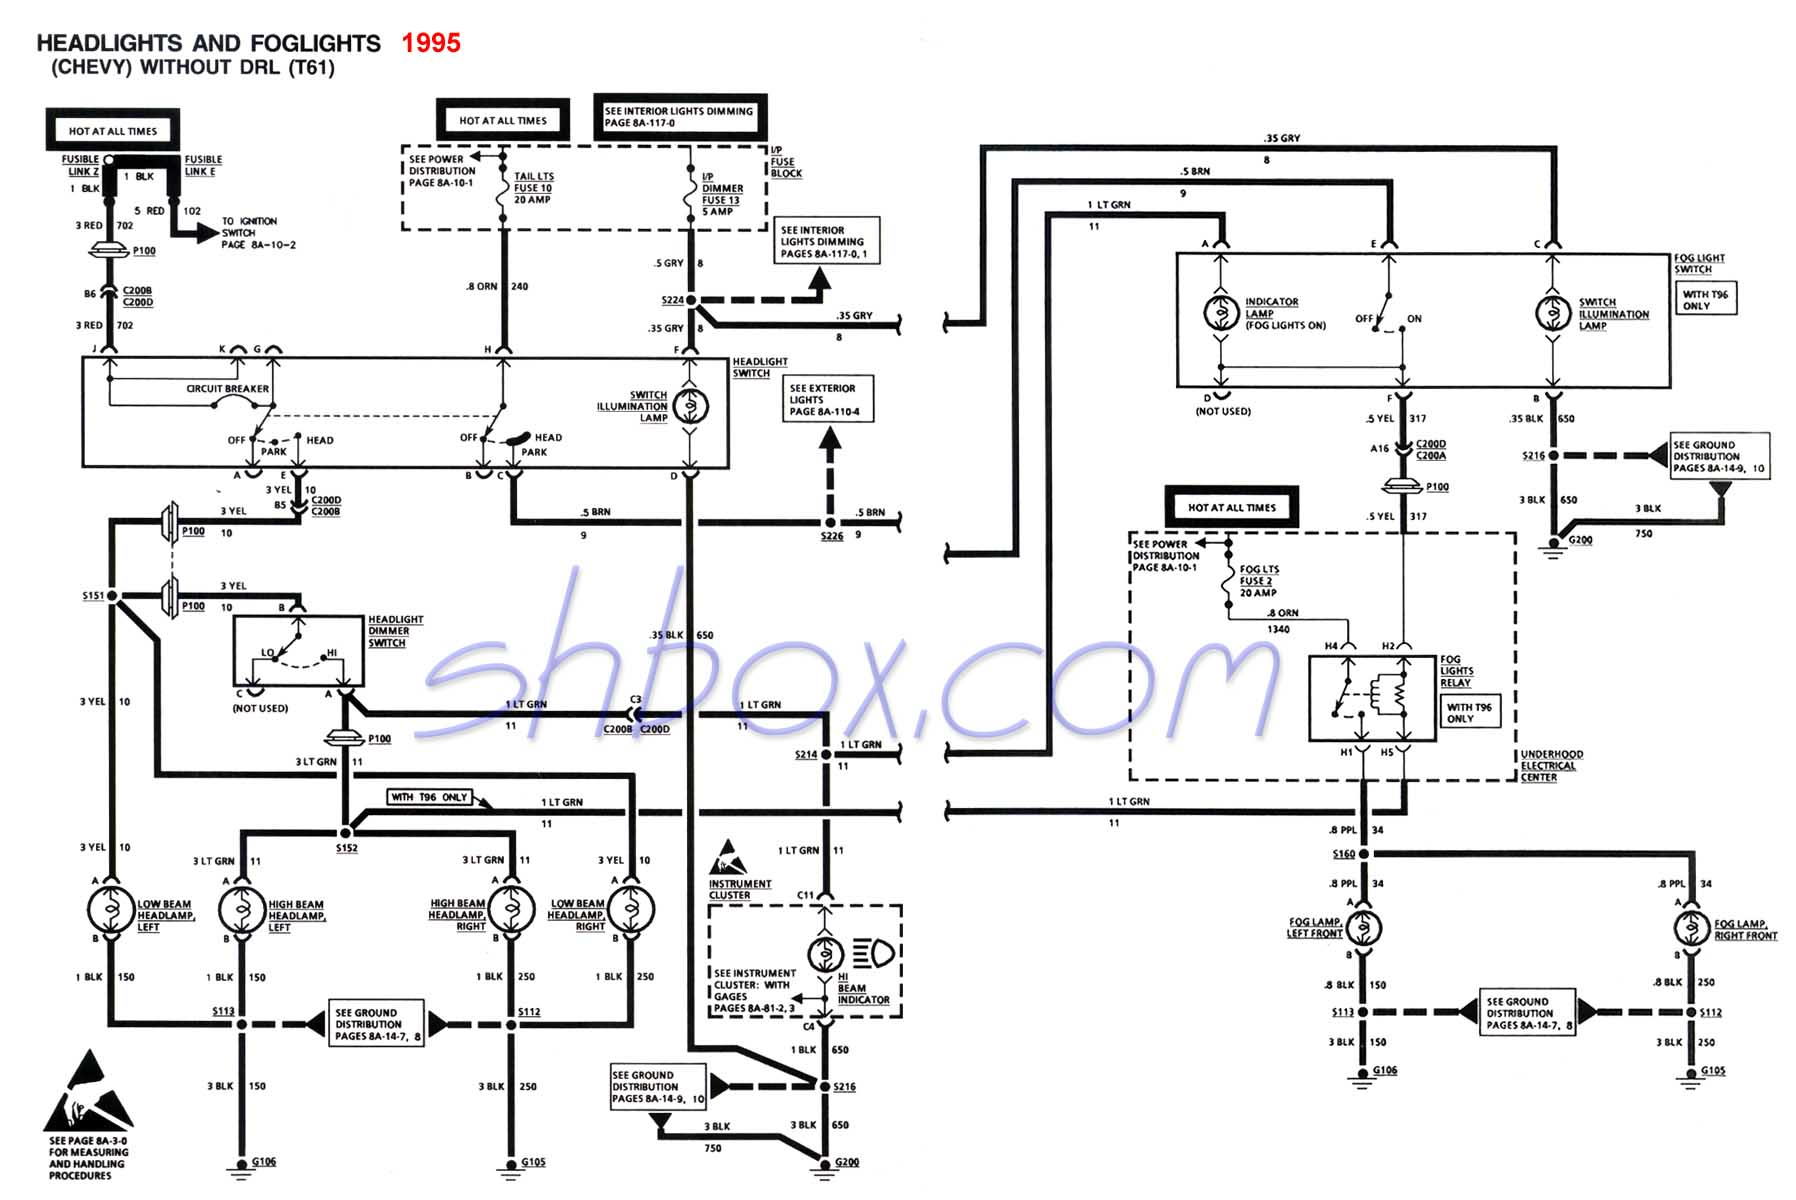 hight resolution of 4th gen lt1 f body tech aids zl1 wiring diagram headlight foglight schematic 1995 camaro